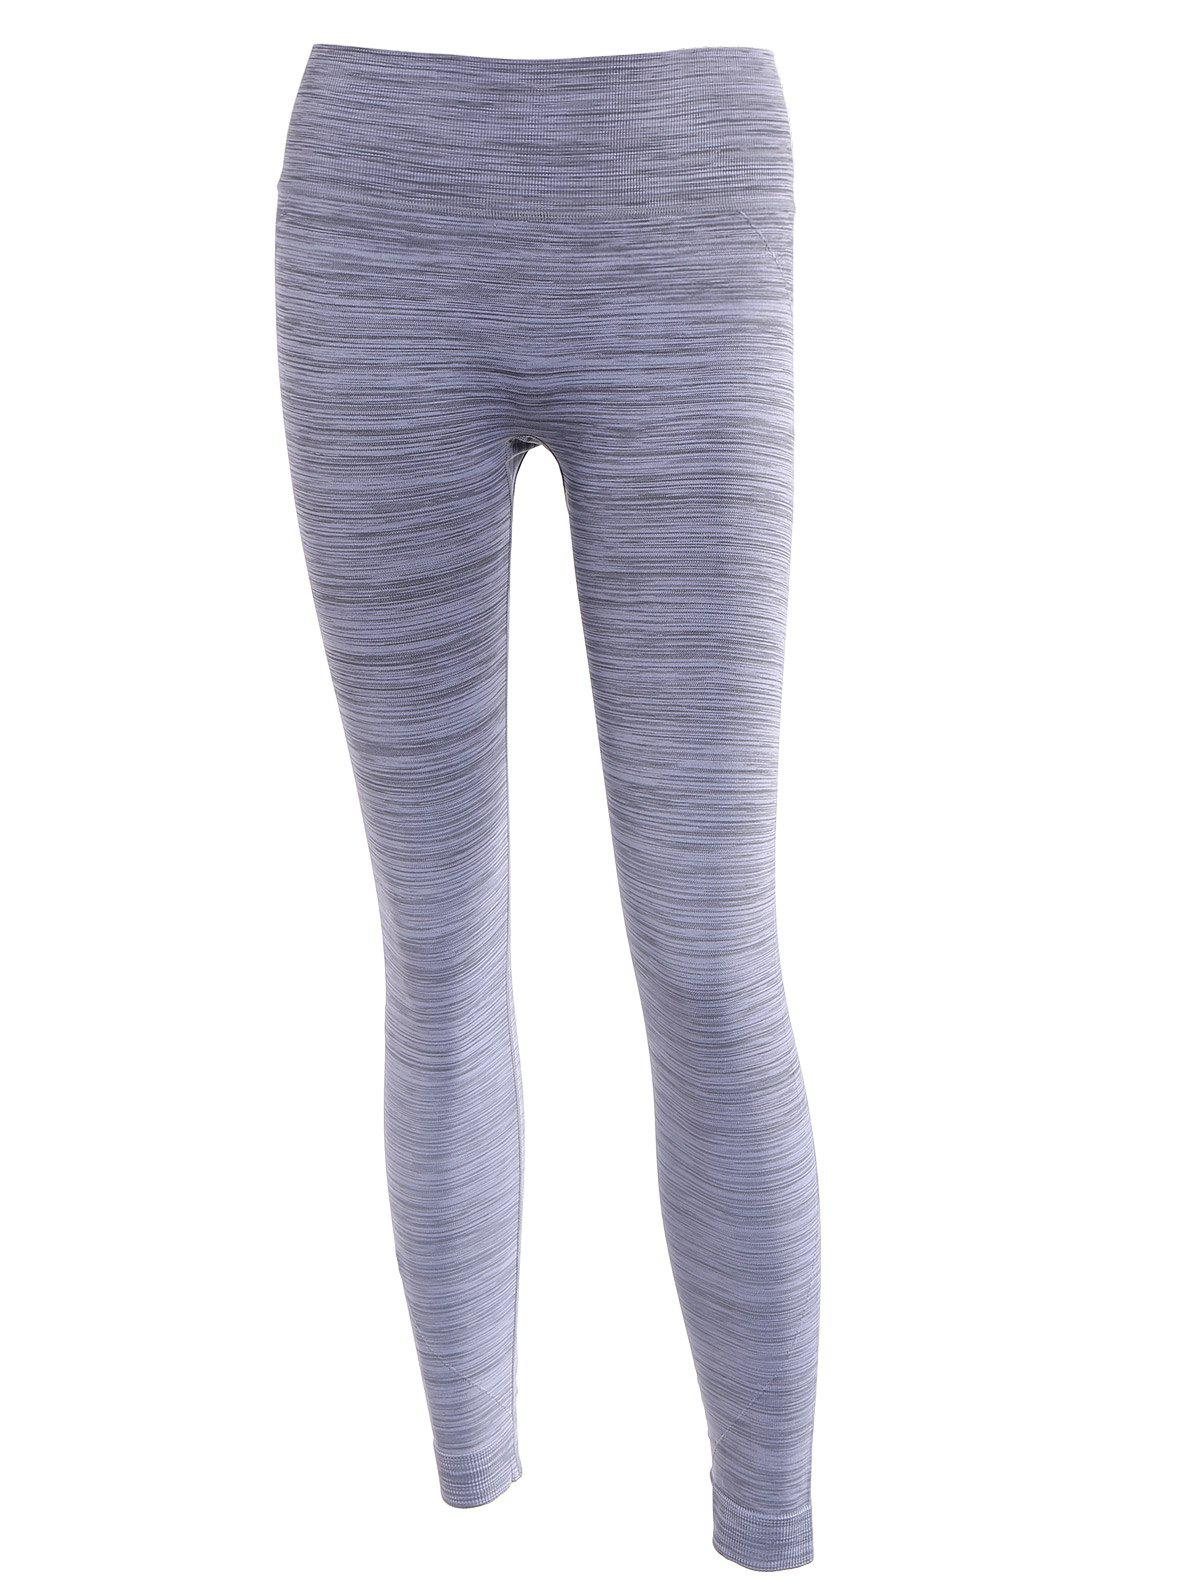 Casual Women's Tie-Dyed Stretch Slimming Yoga Pants